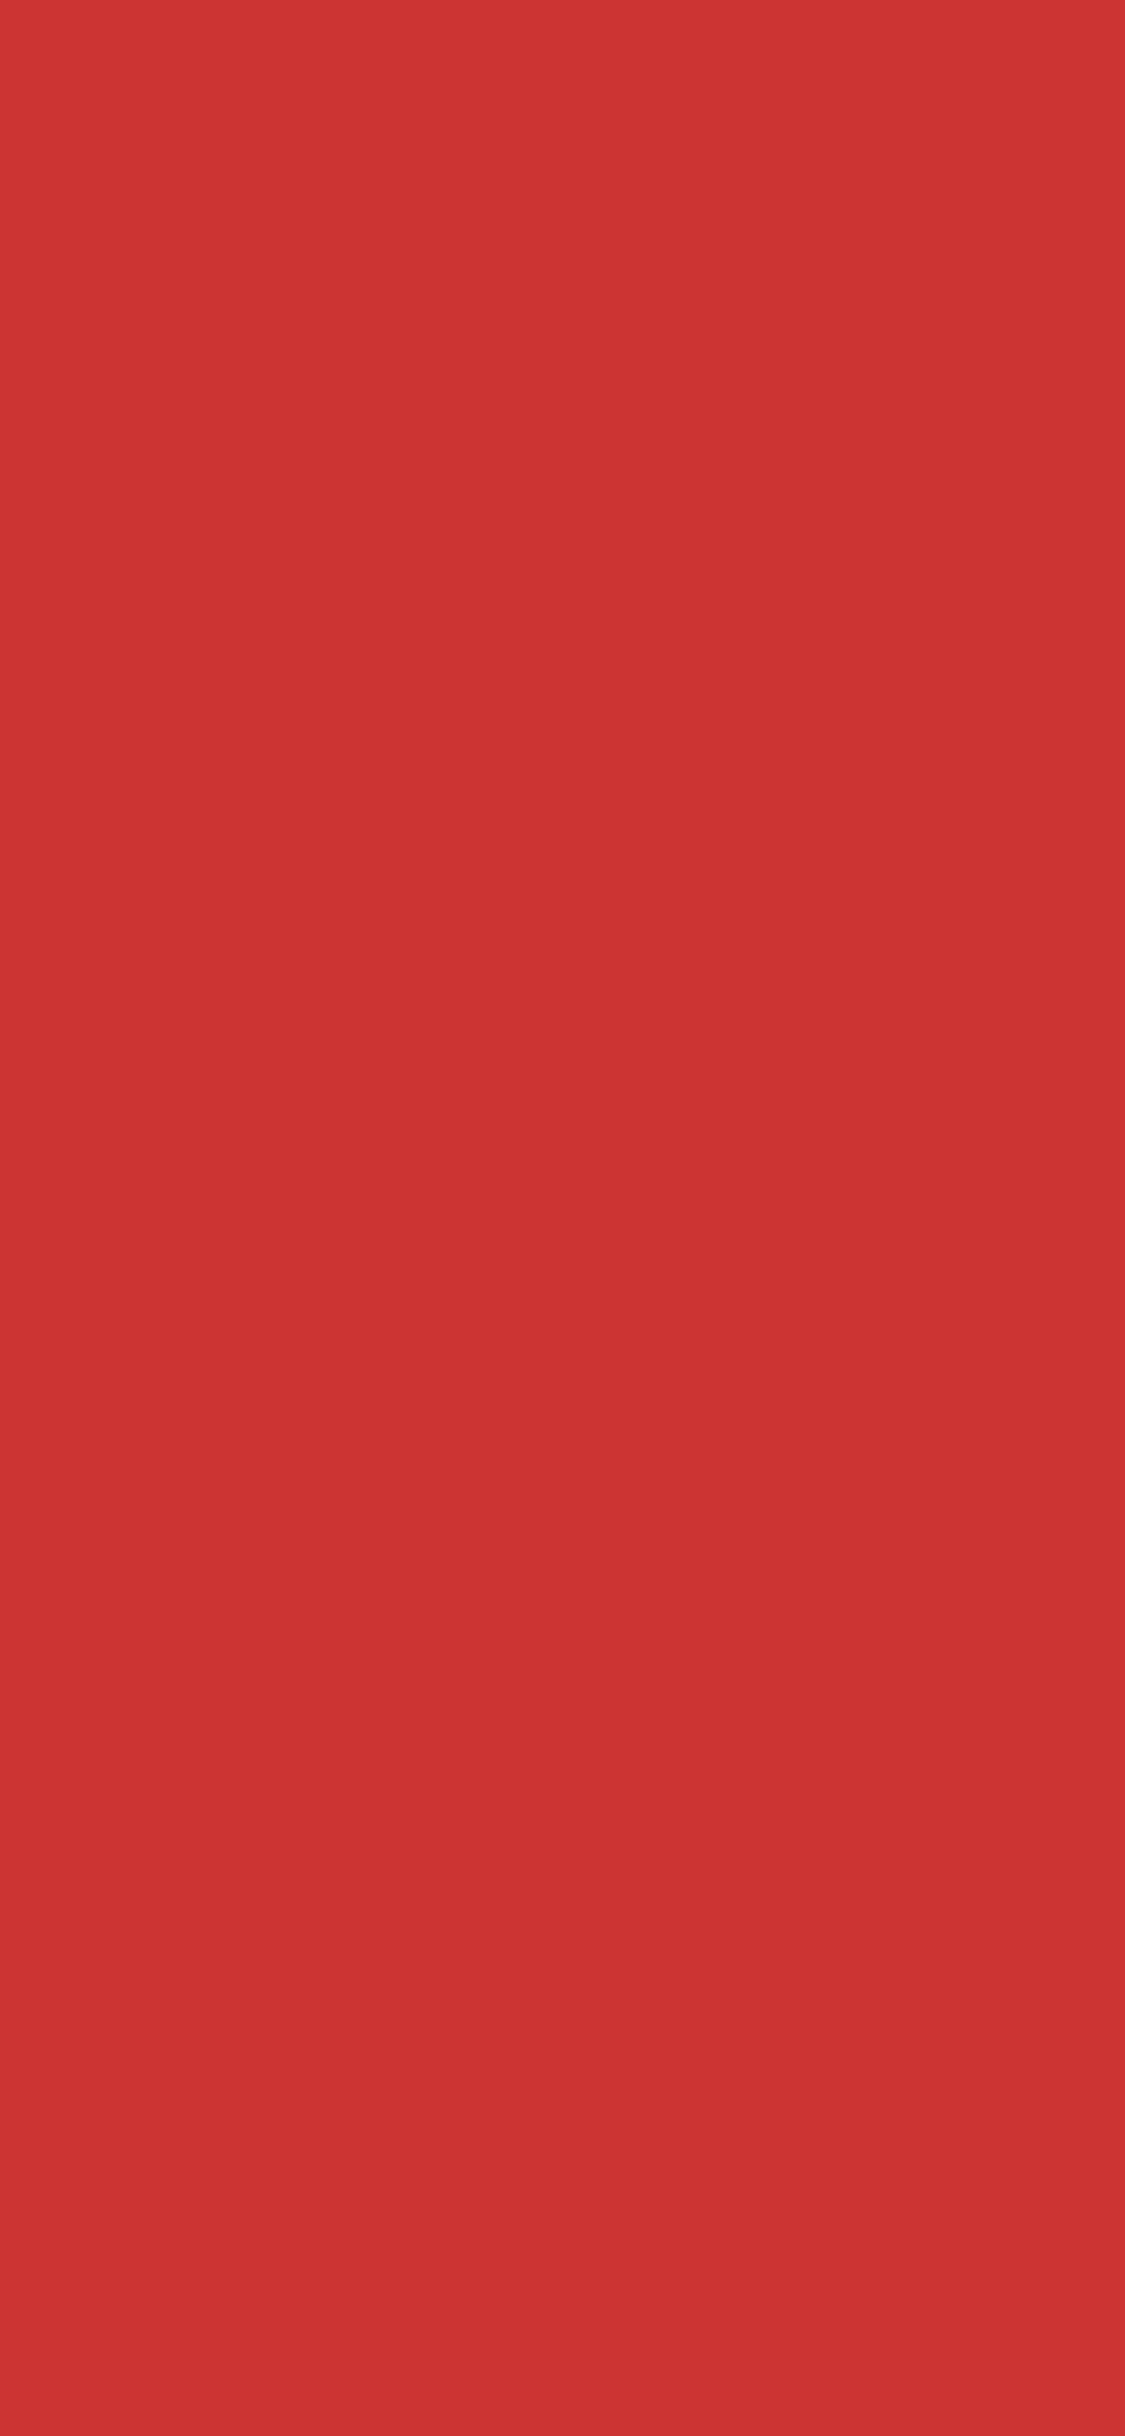 1125x2436 Persian Red Solid Color Background